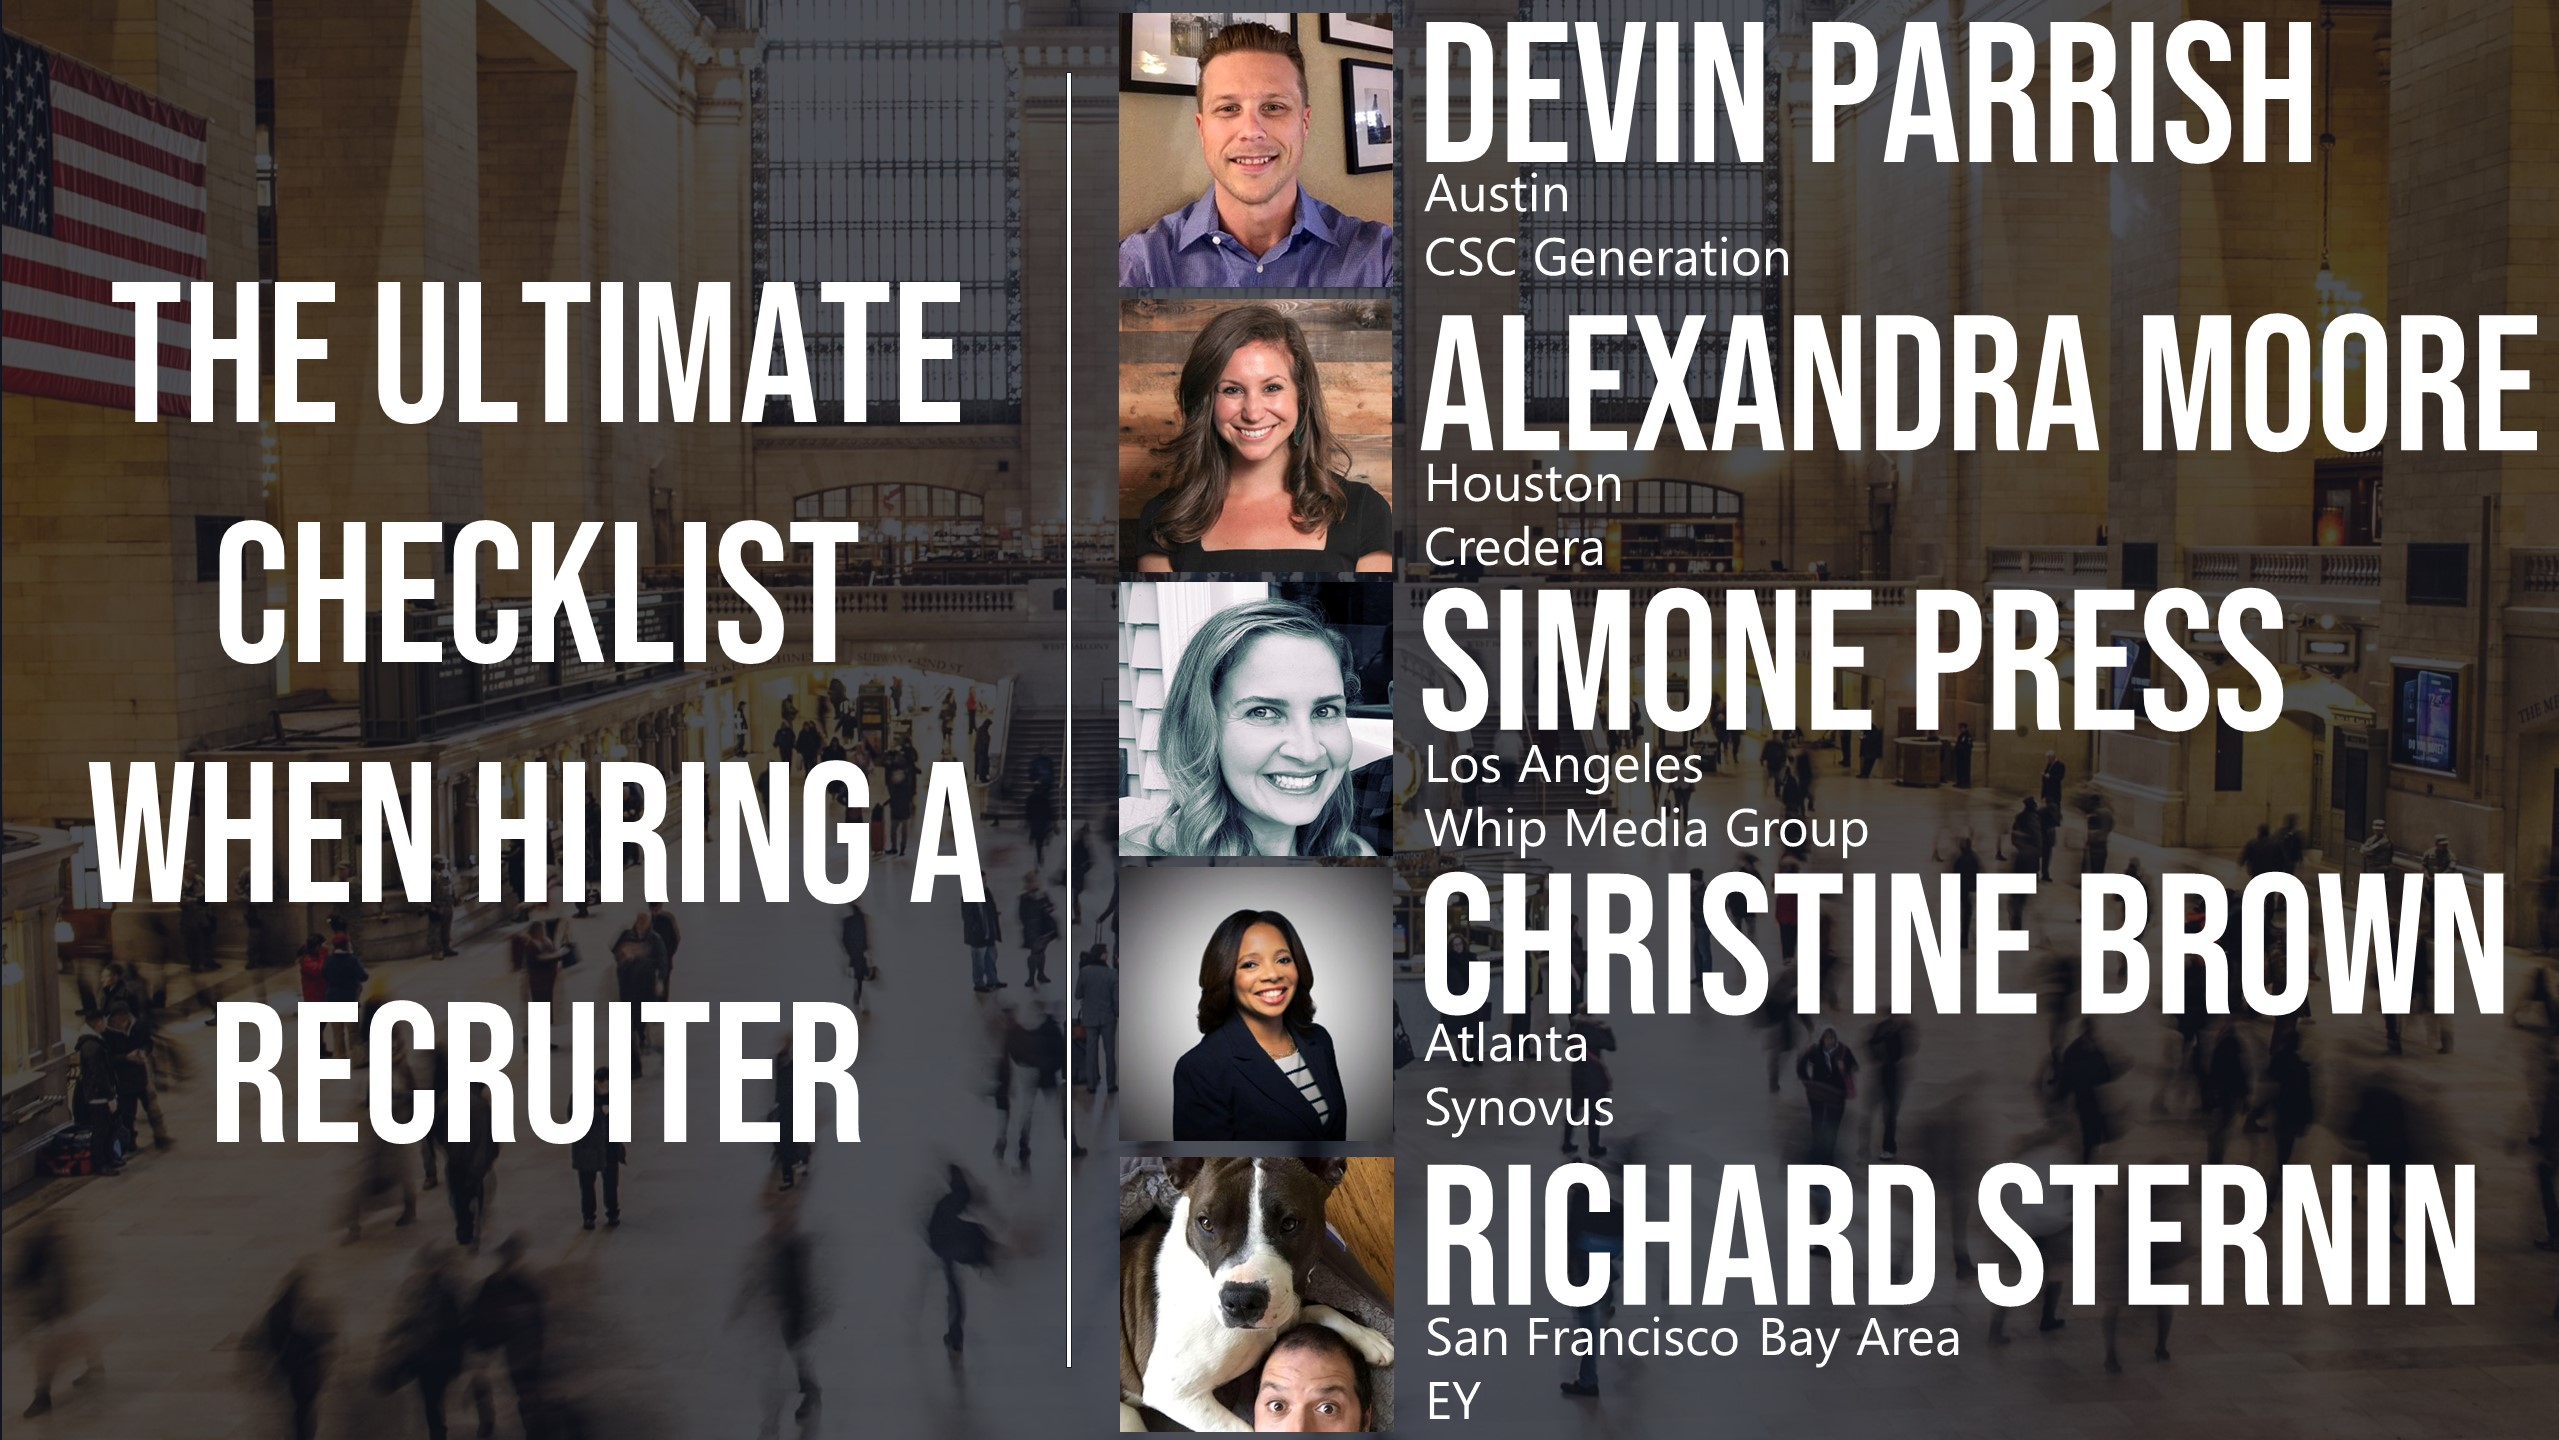 The Ultimate Checklist When Hiring a Recruiter